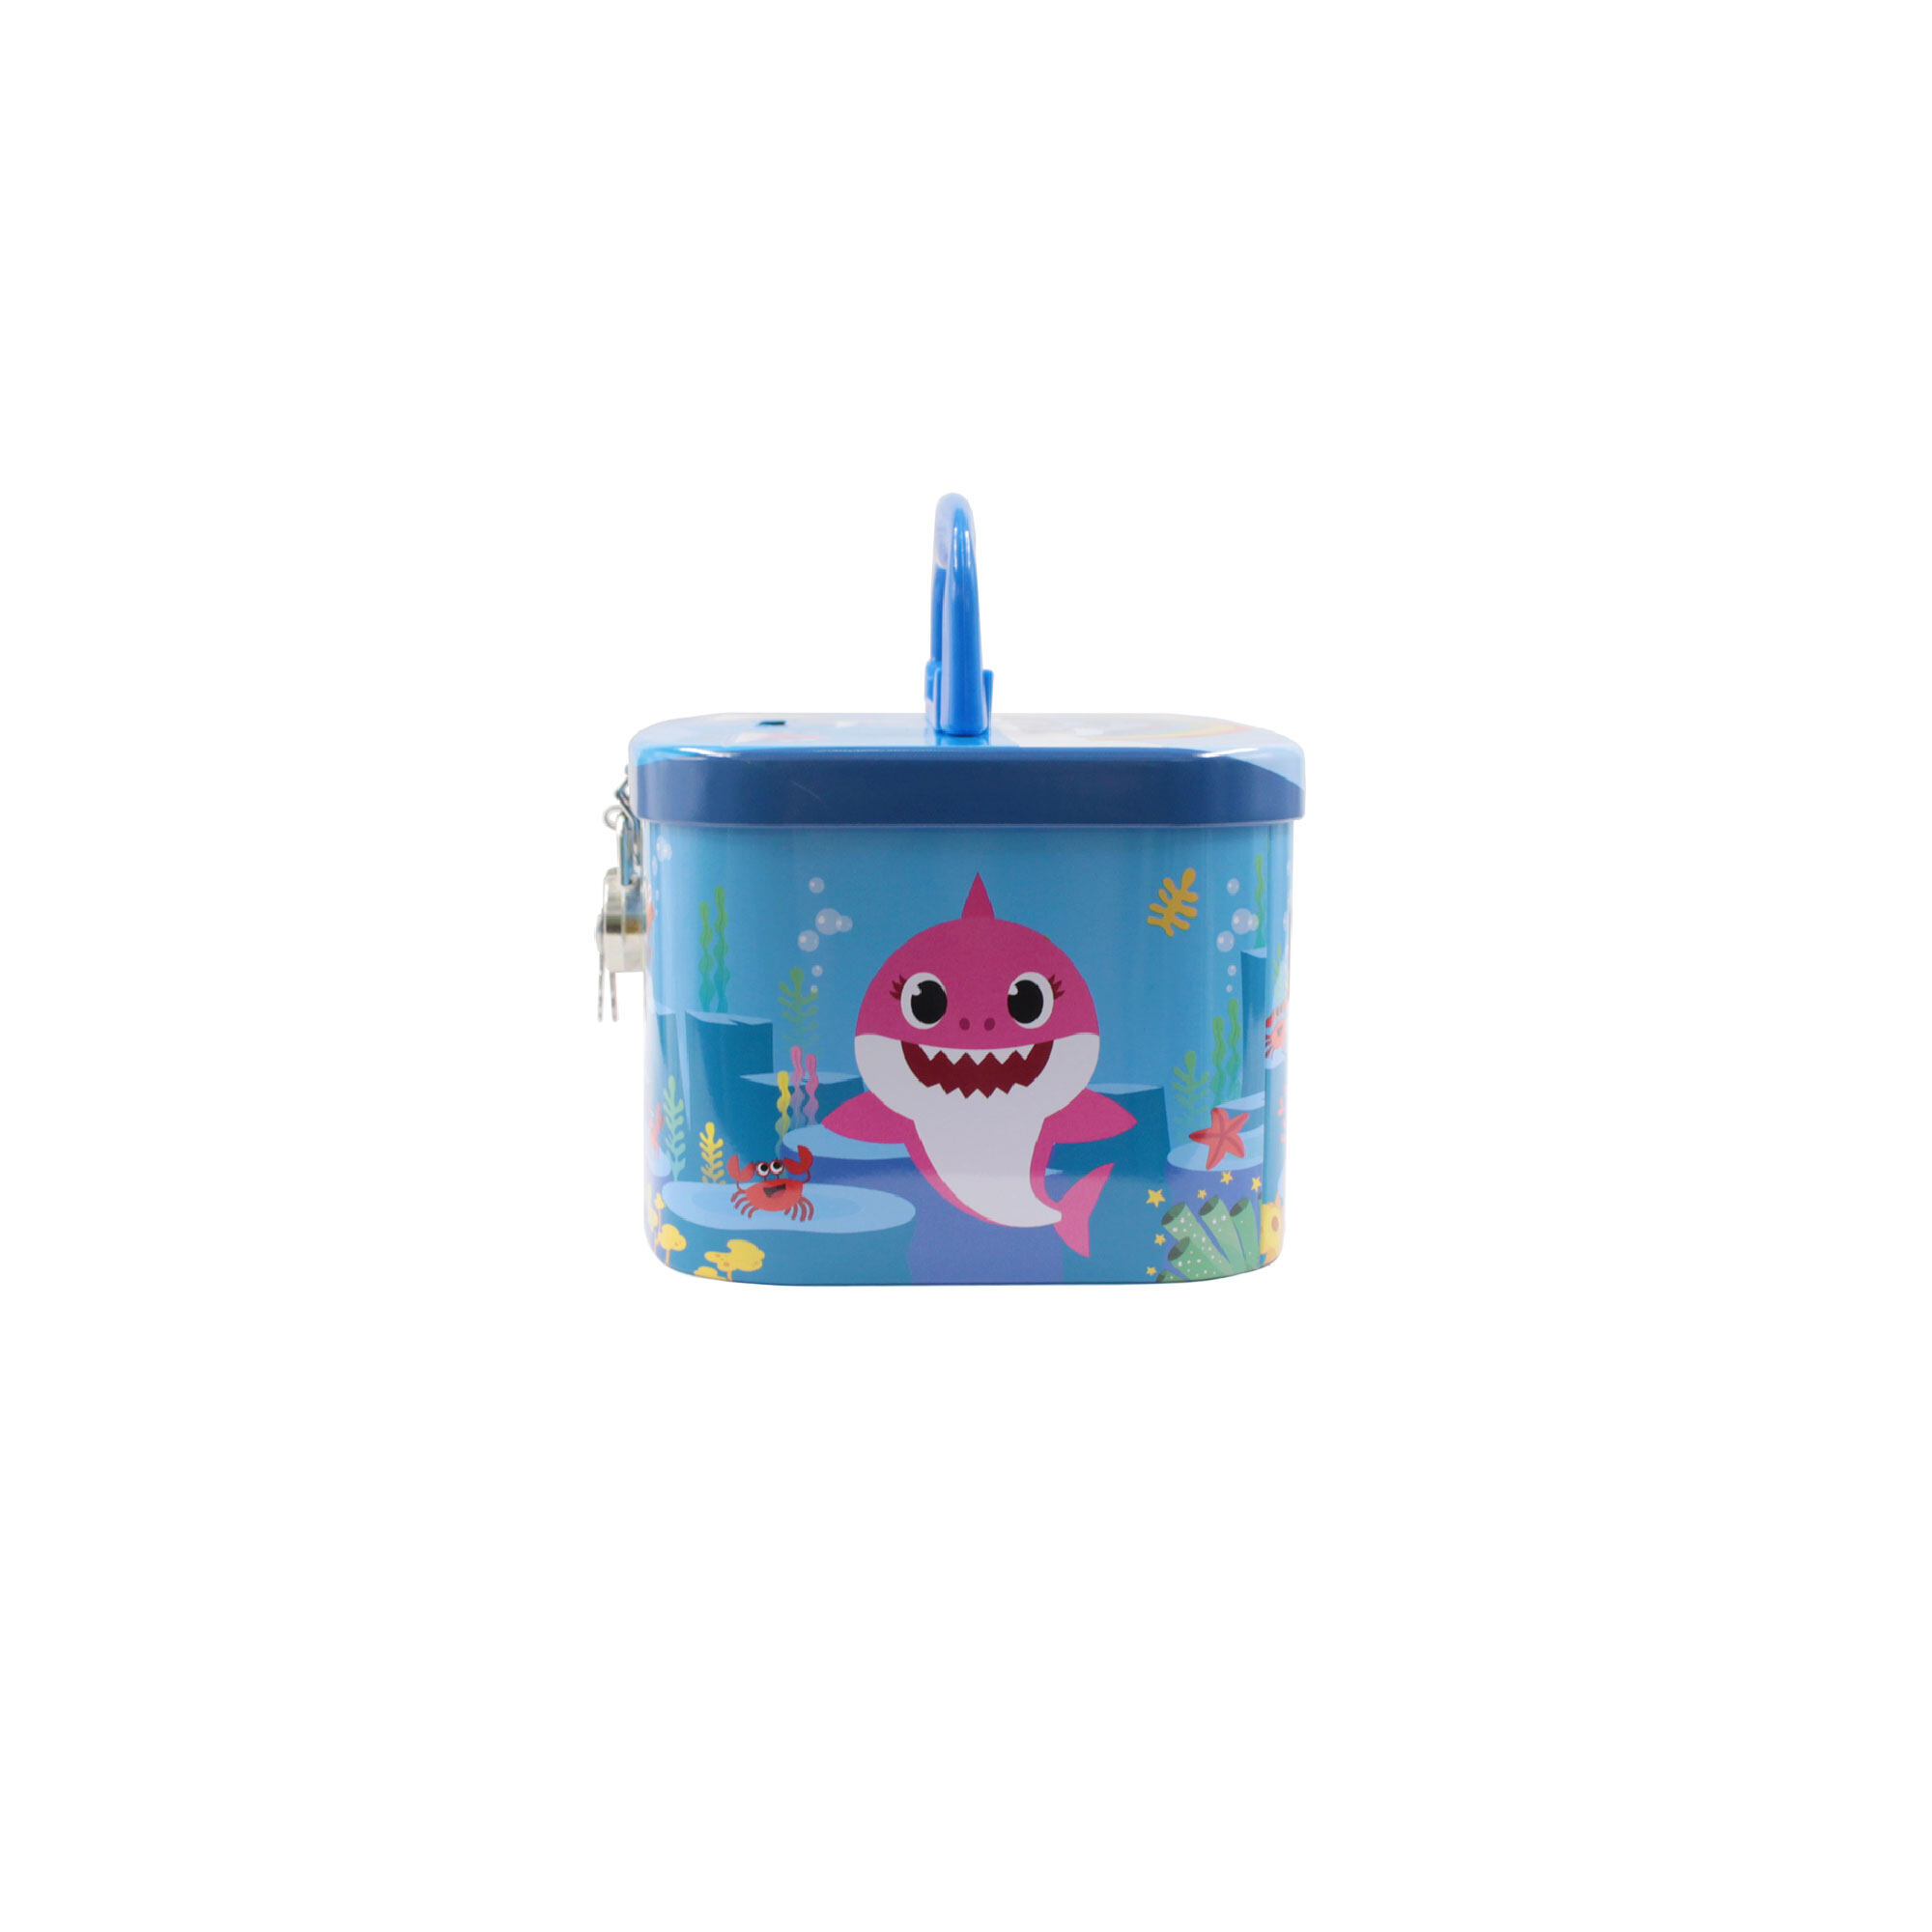 Pinkfong Baby Shark Children Coin Bank With Lock